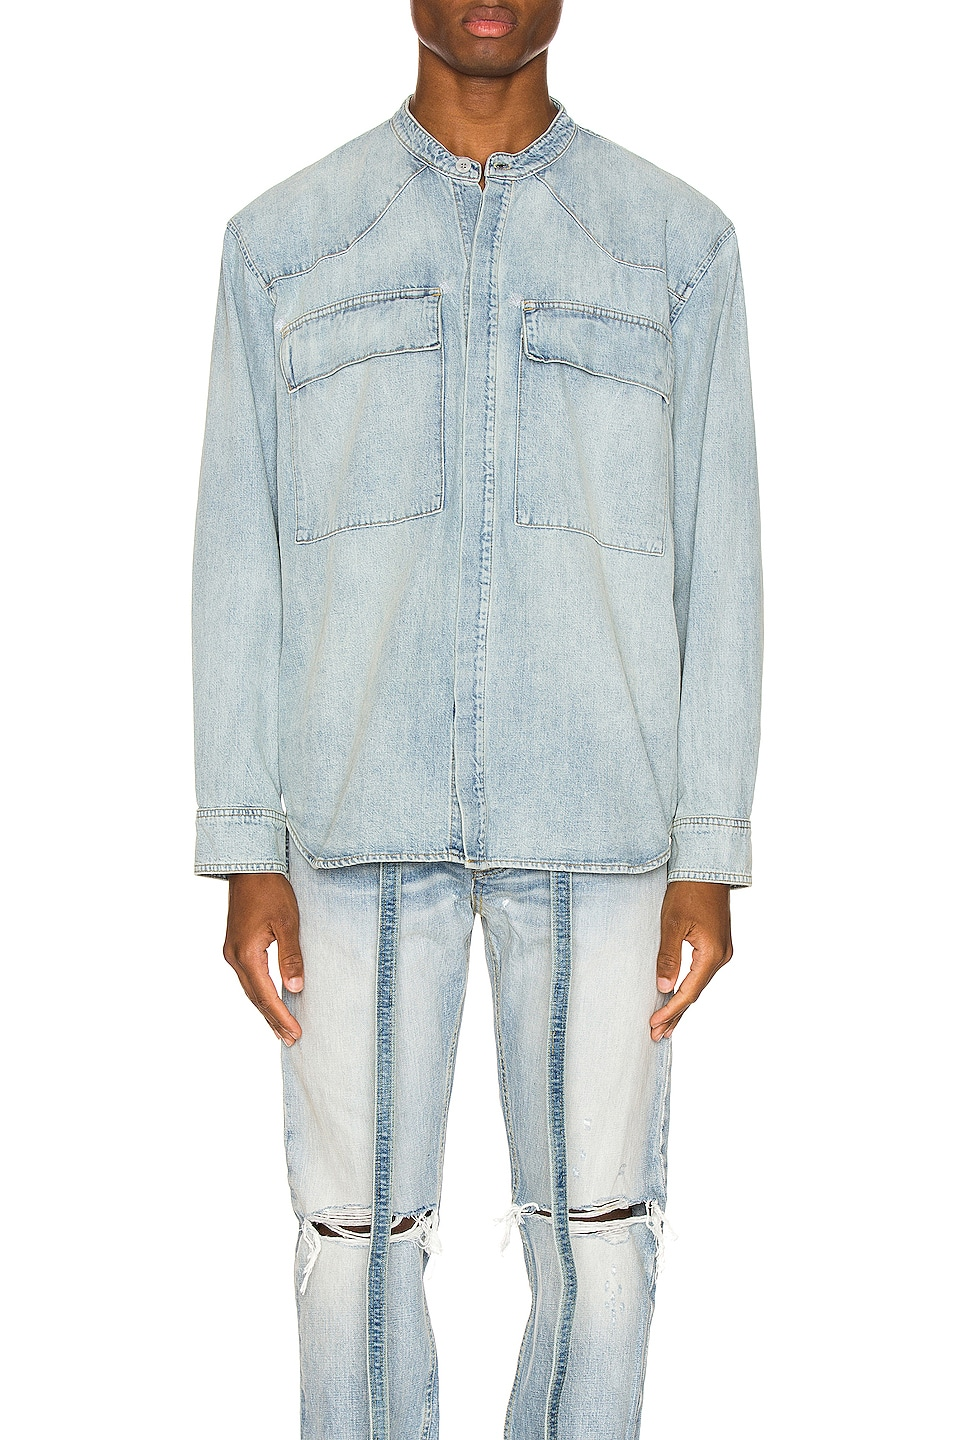 Image 1 of Fear of God Vintage Denim Shirt in Vintage Indigo